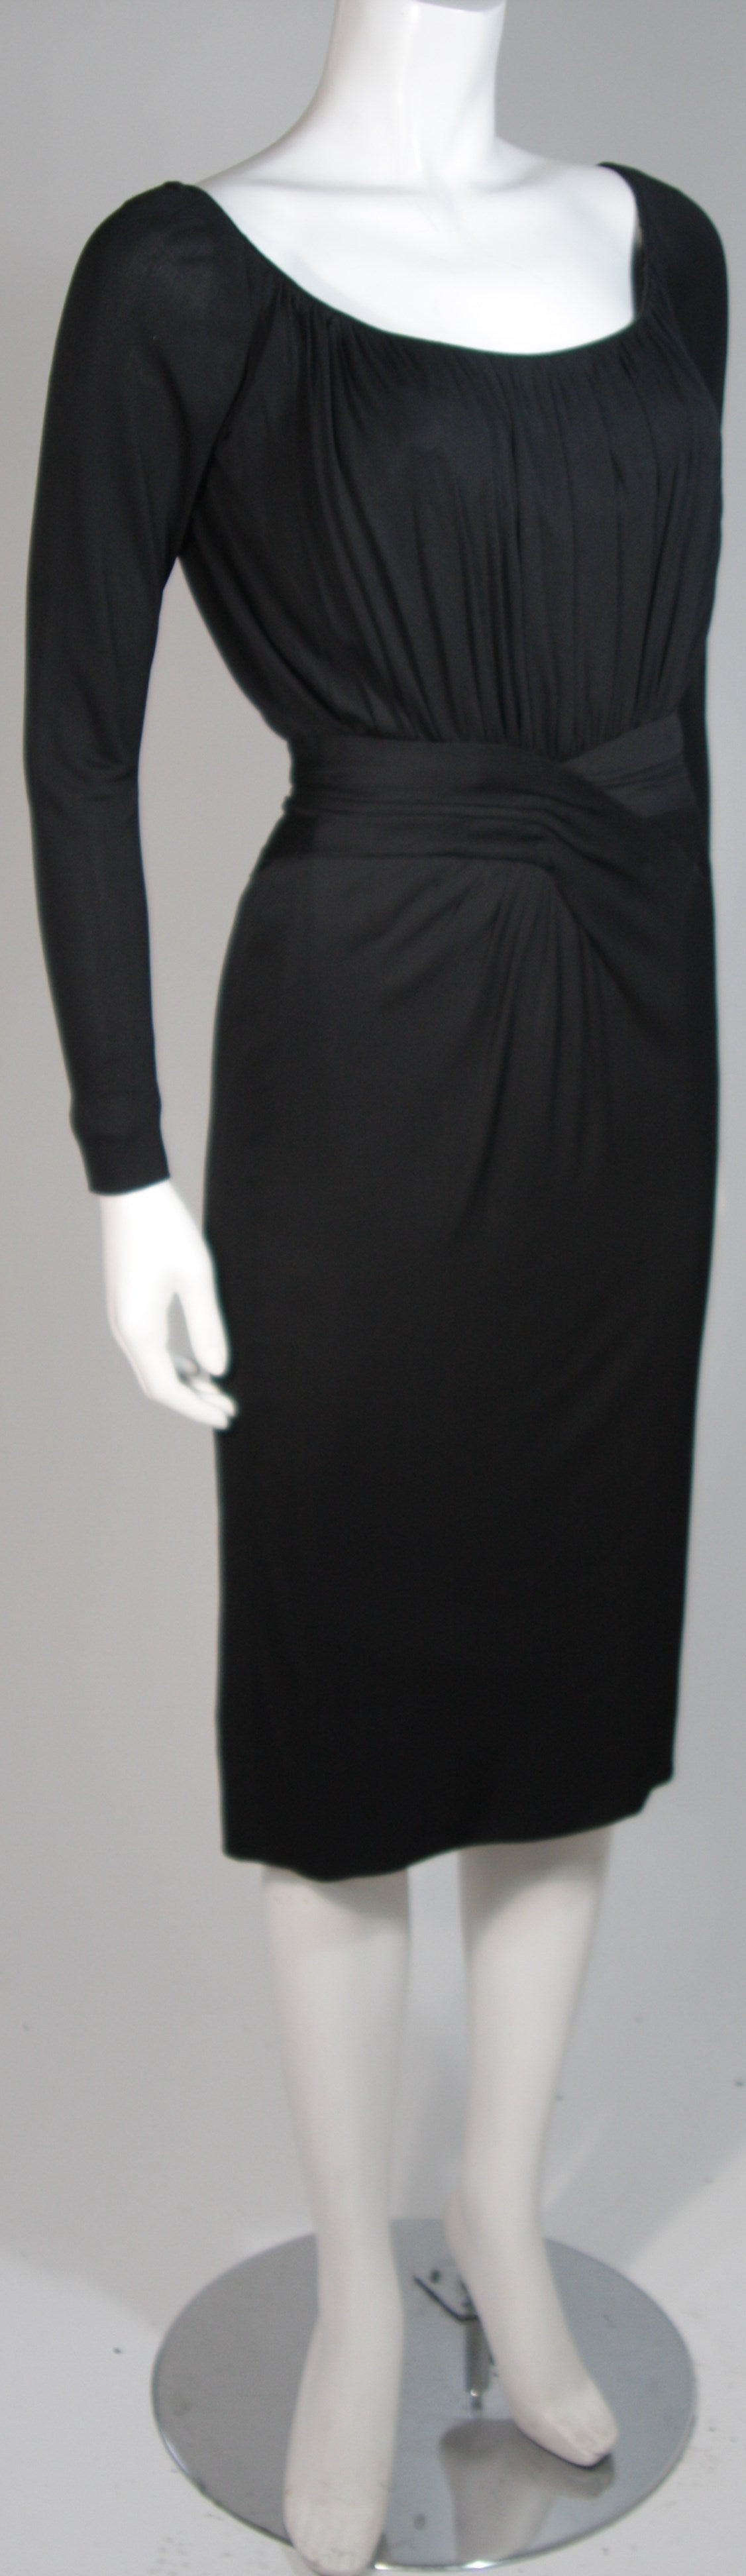 Ceil Chapman Black Silk Crepe Cocktail Dress with Gathers Size 4-6 4